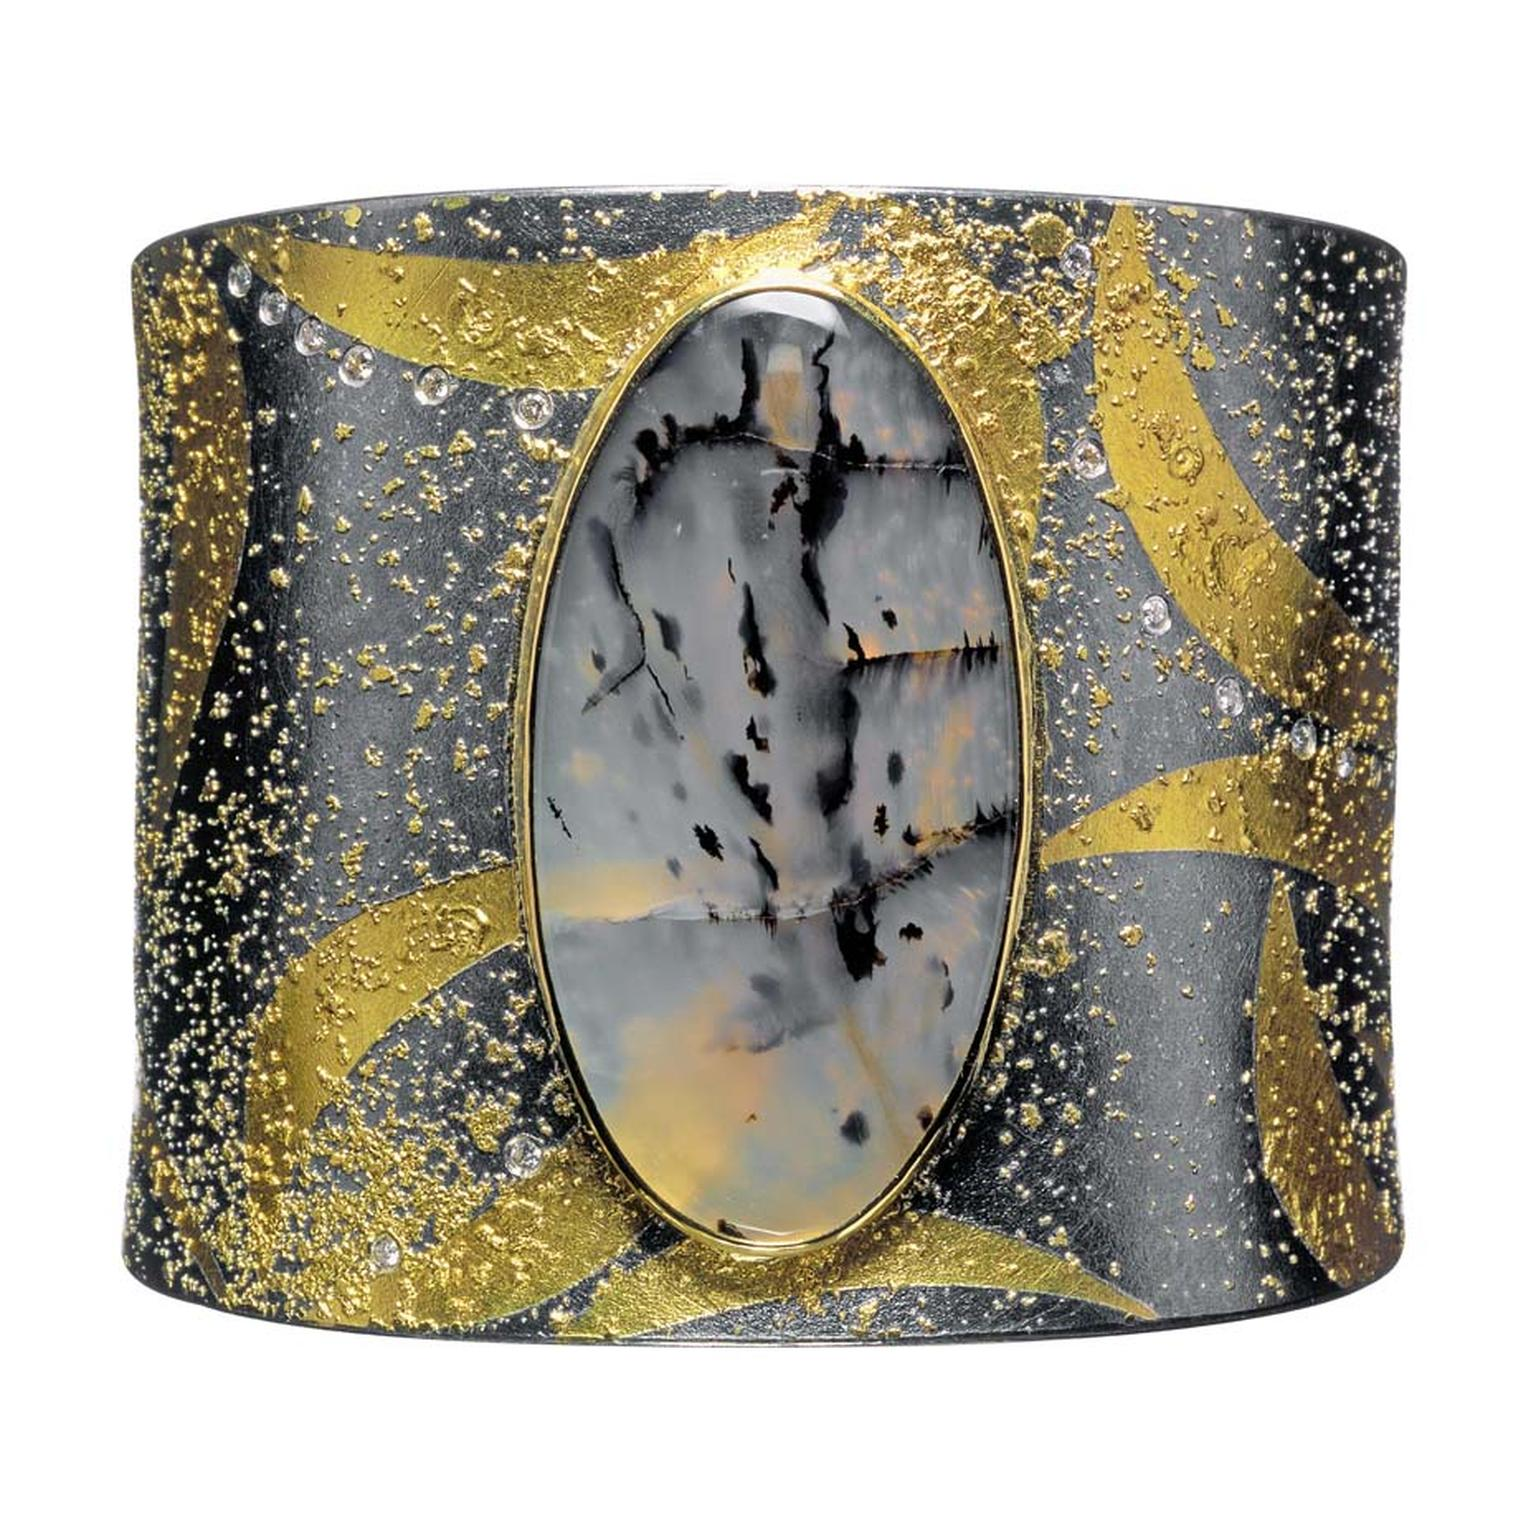 Atelier Zobel by Peter Schmid agate cuff in gold and silver with champagne diamonds.